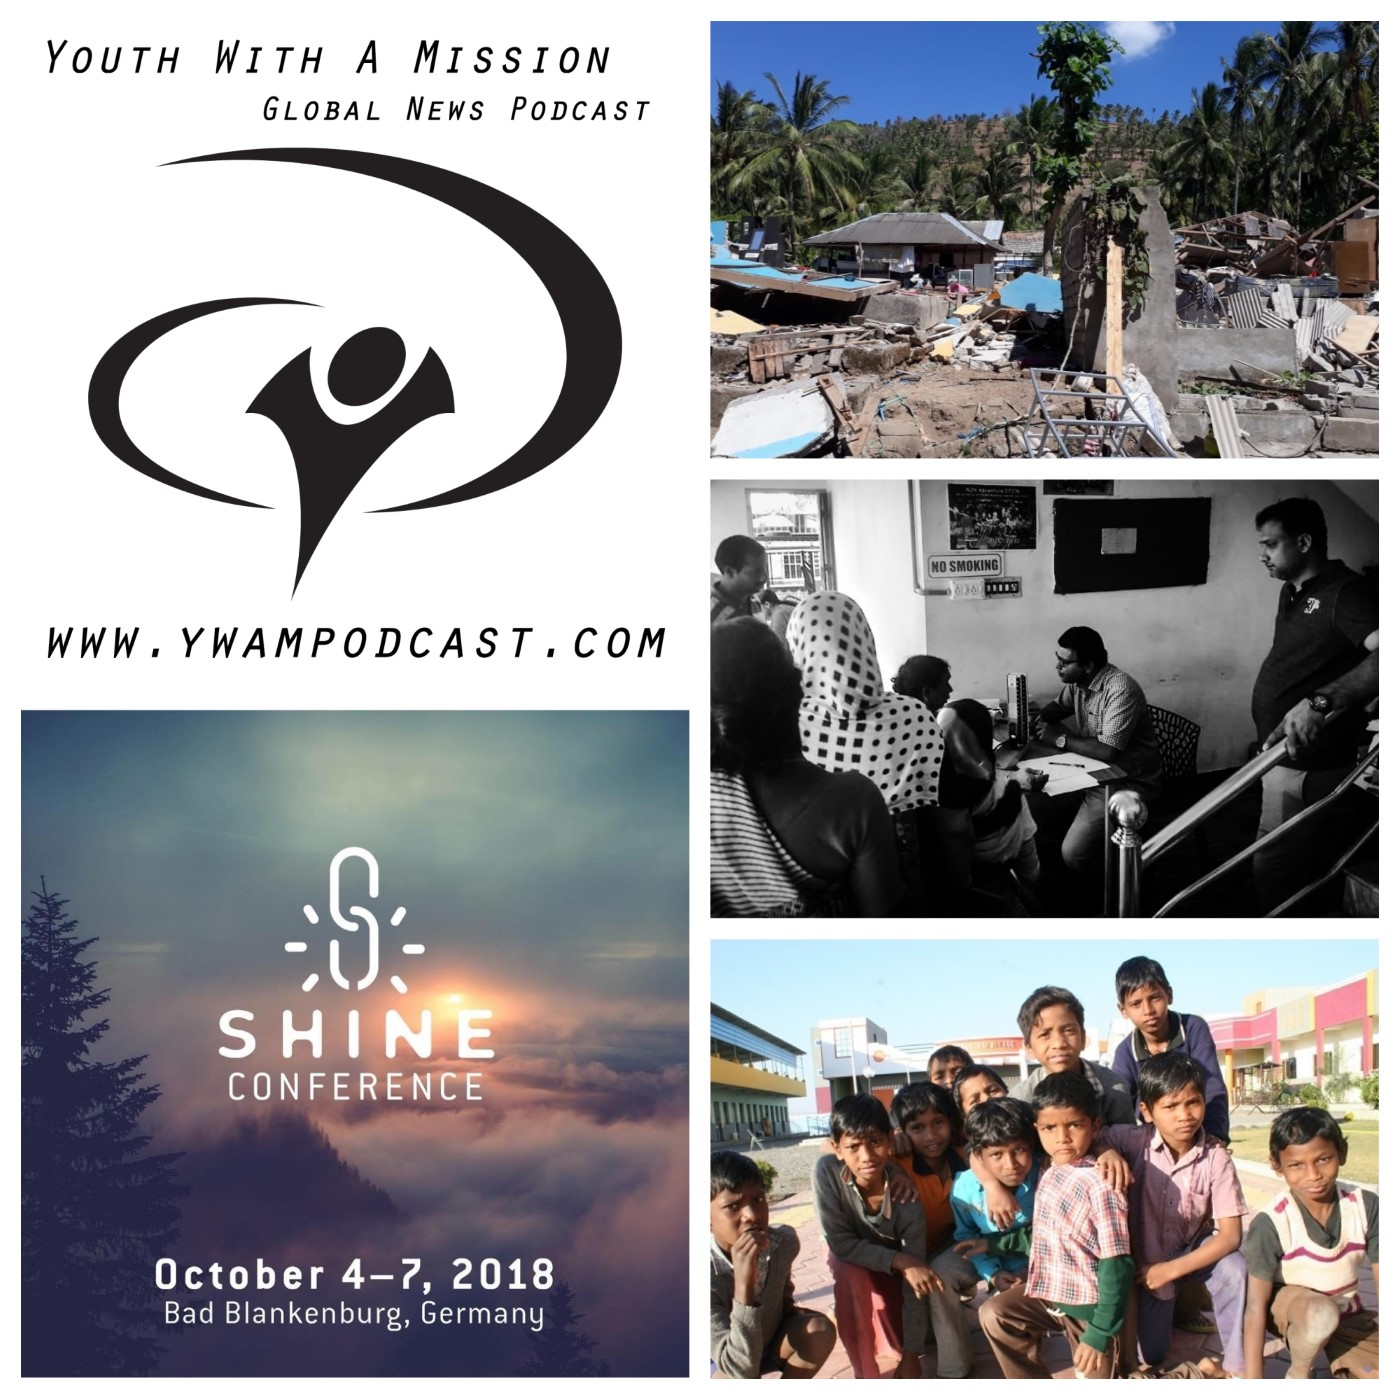 YWAM Responds to Kerela Floods, Fight Against Trafficking and ... on cottesloe beach perth australia, ywam london, missions in australia, ywam kona hawaii, ywam sydney,